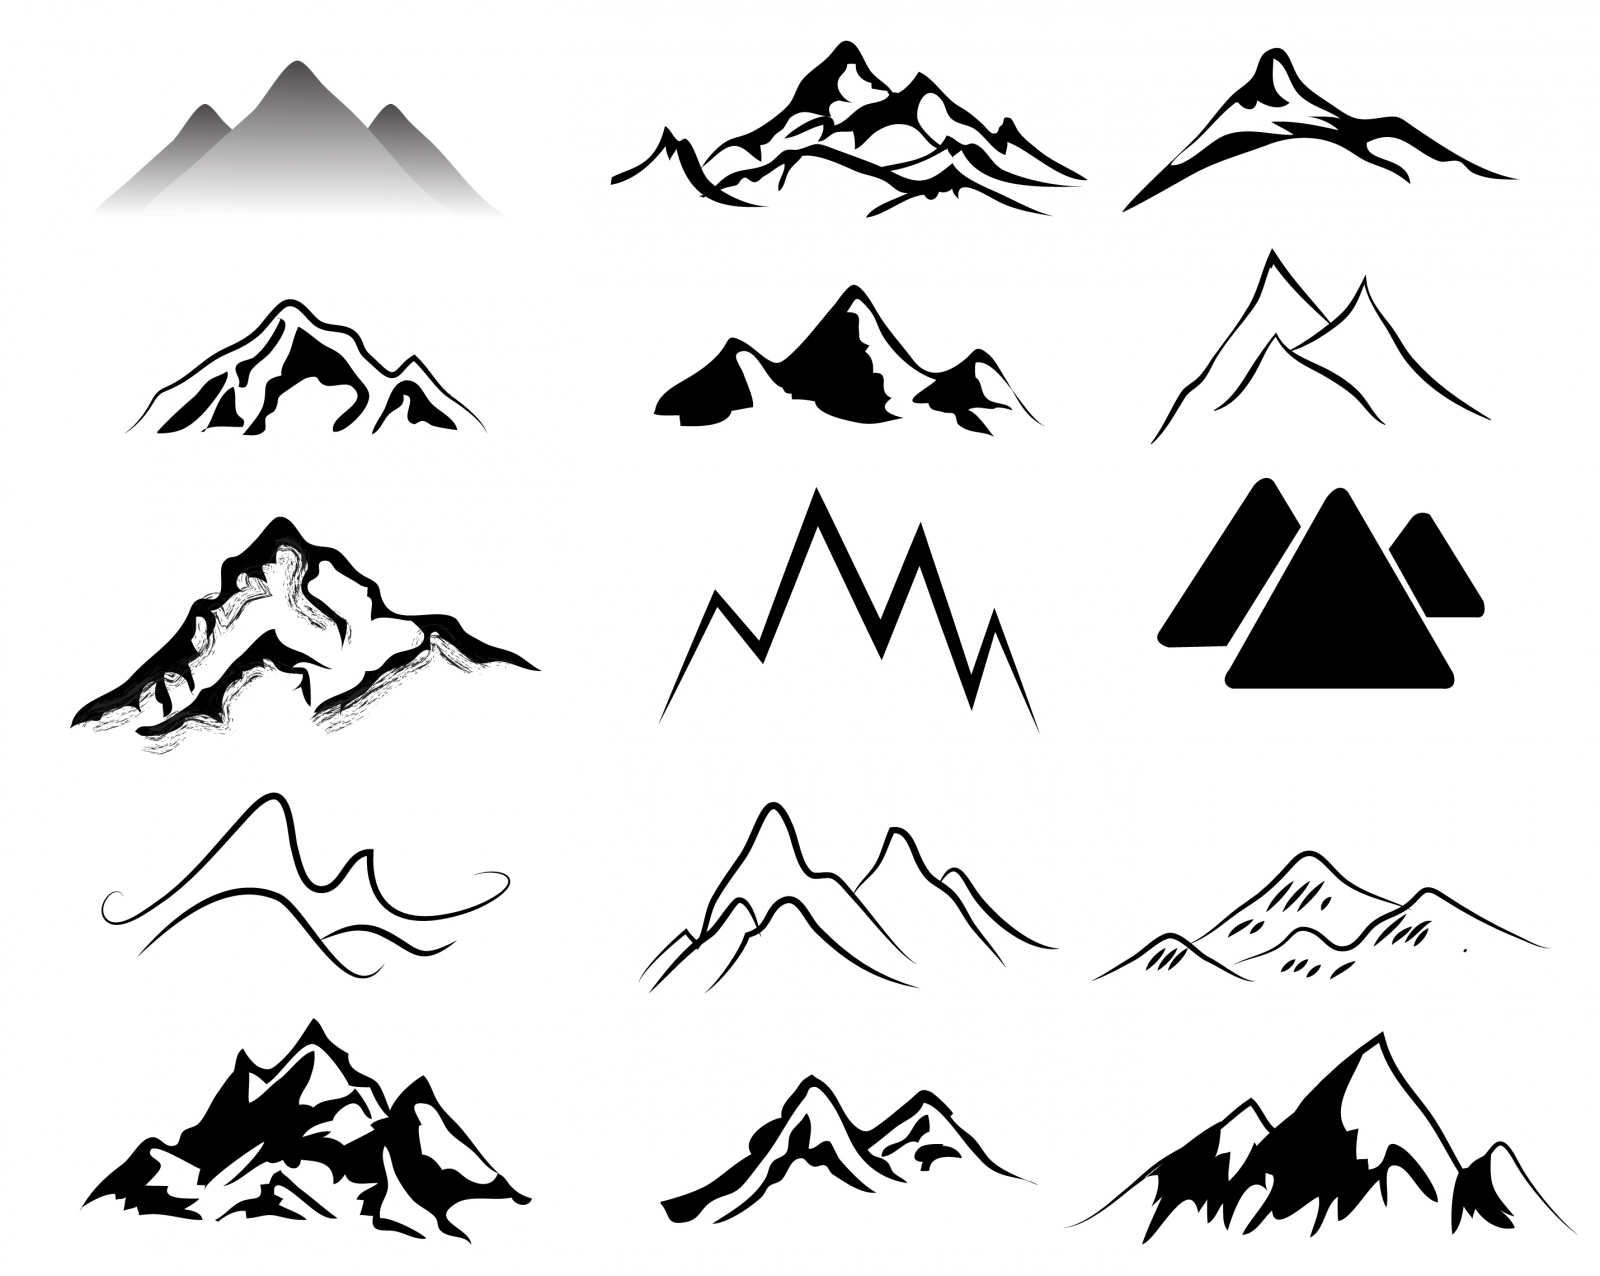 17 Free Mountain Vector Images